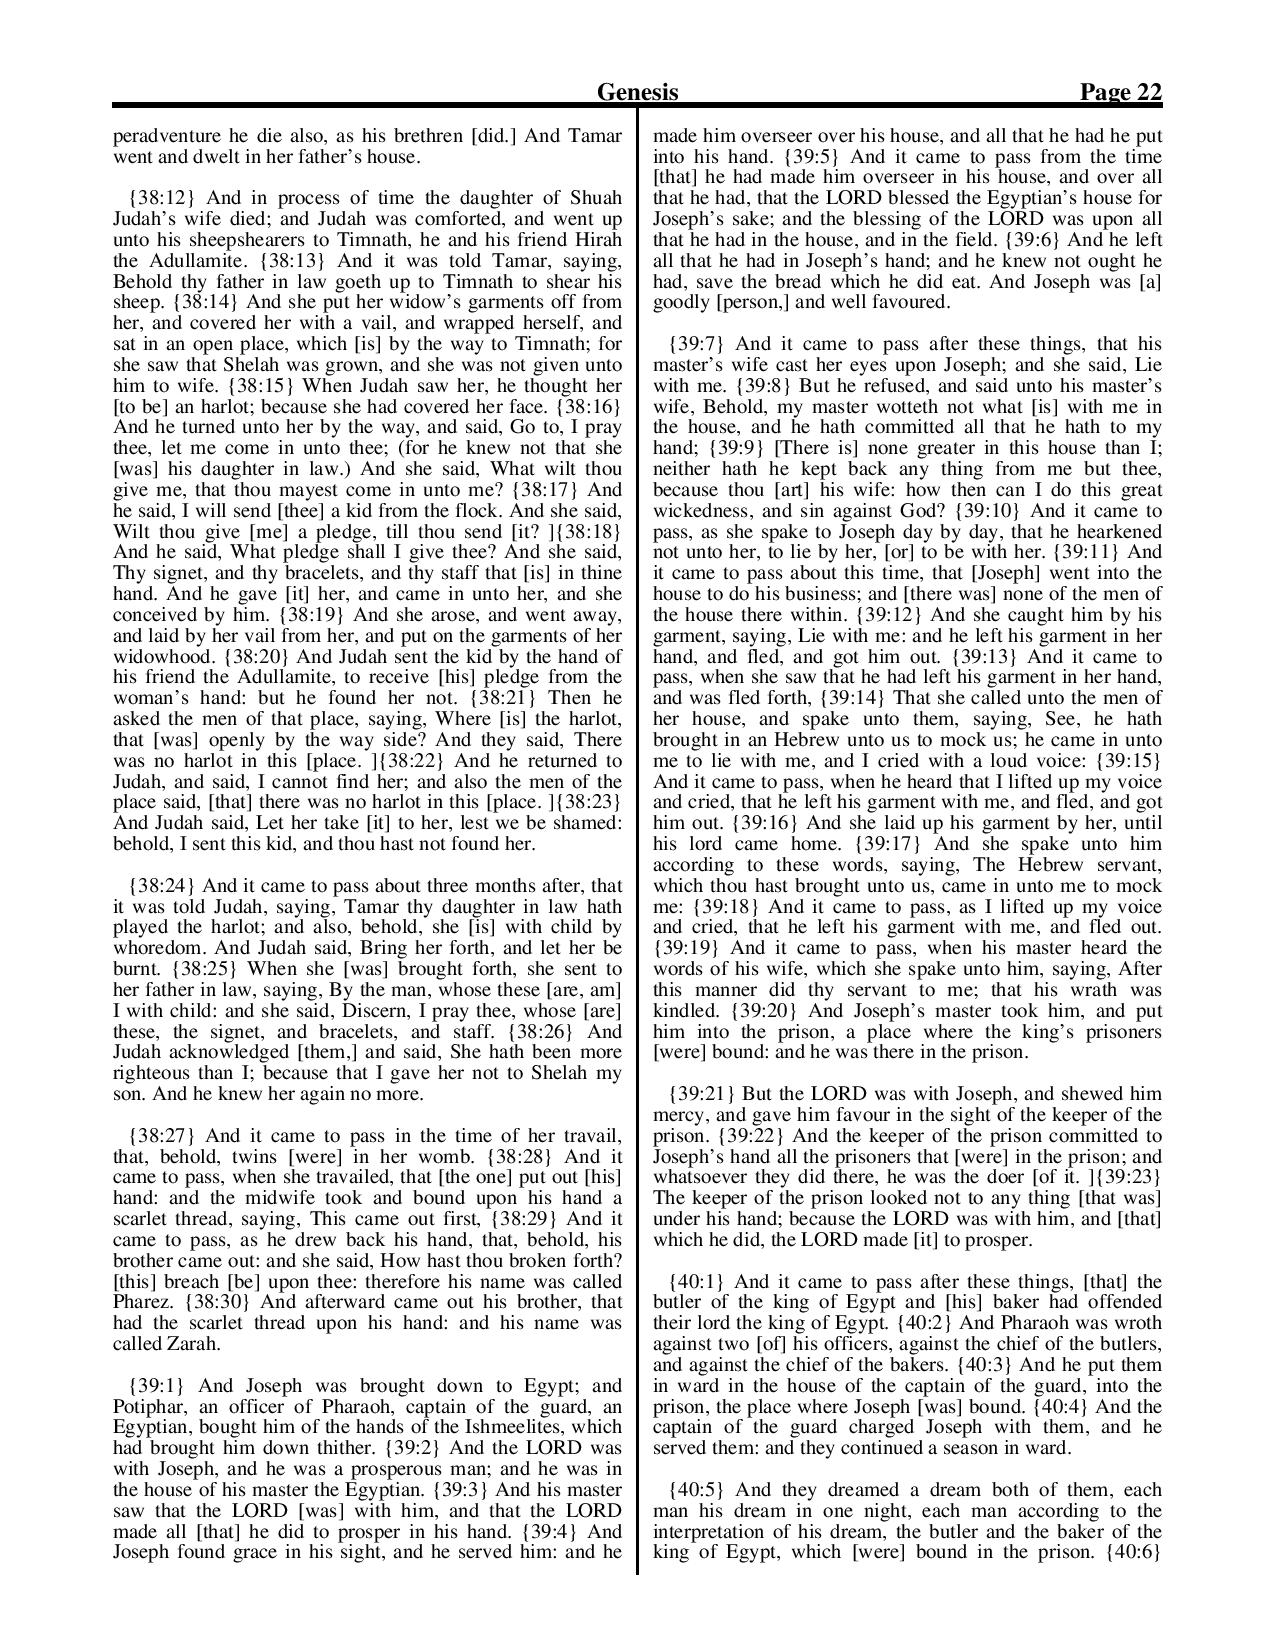 King-James-Bible-KJV-Bible-PDF-page-043